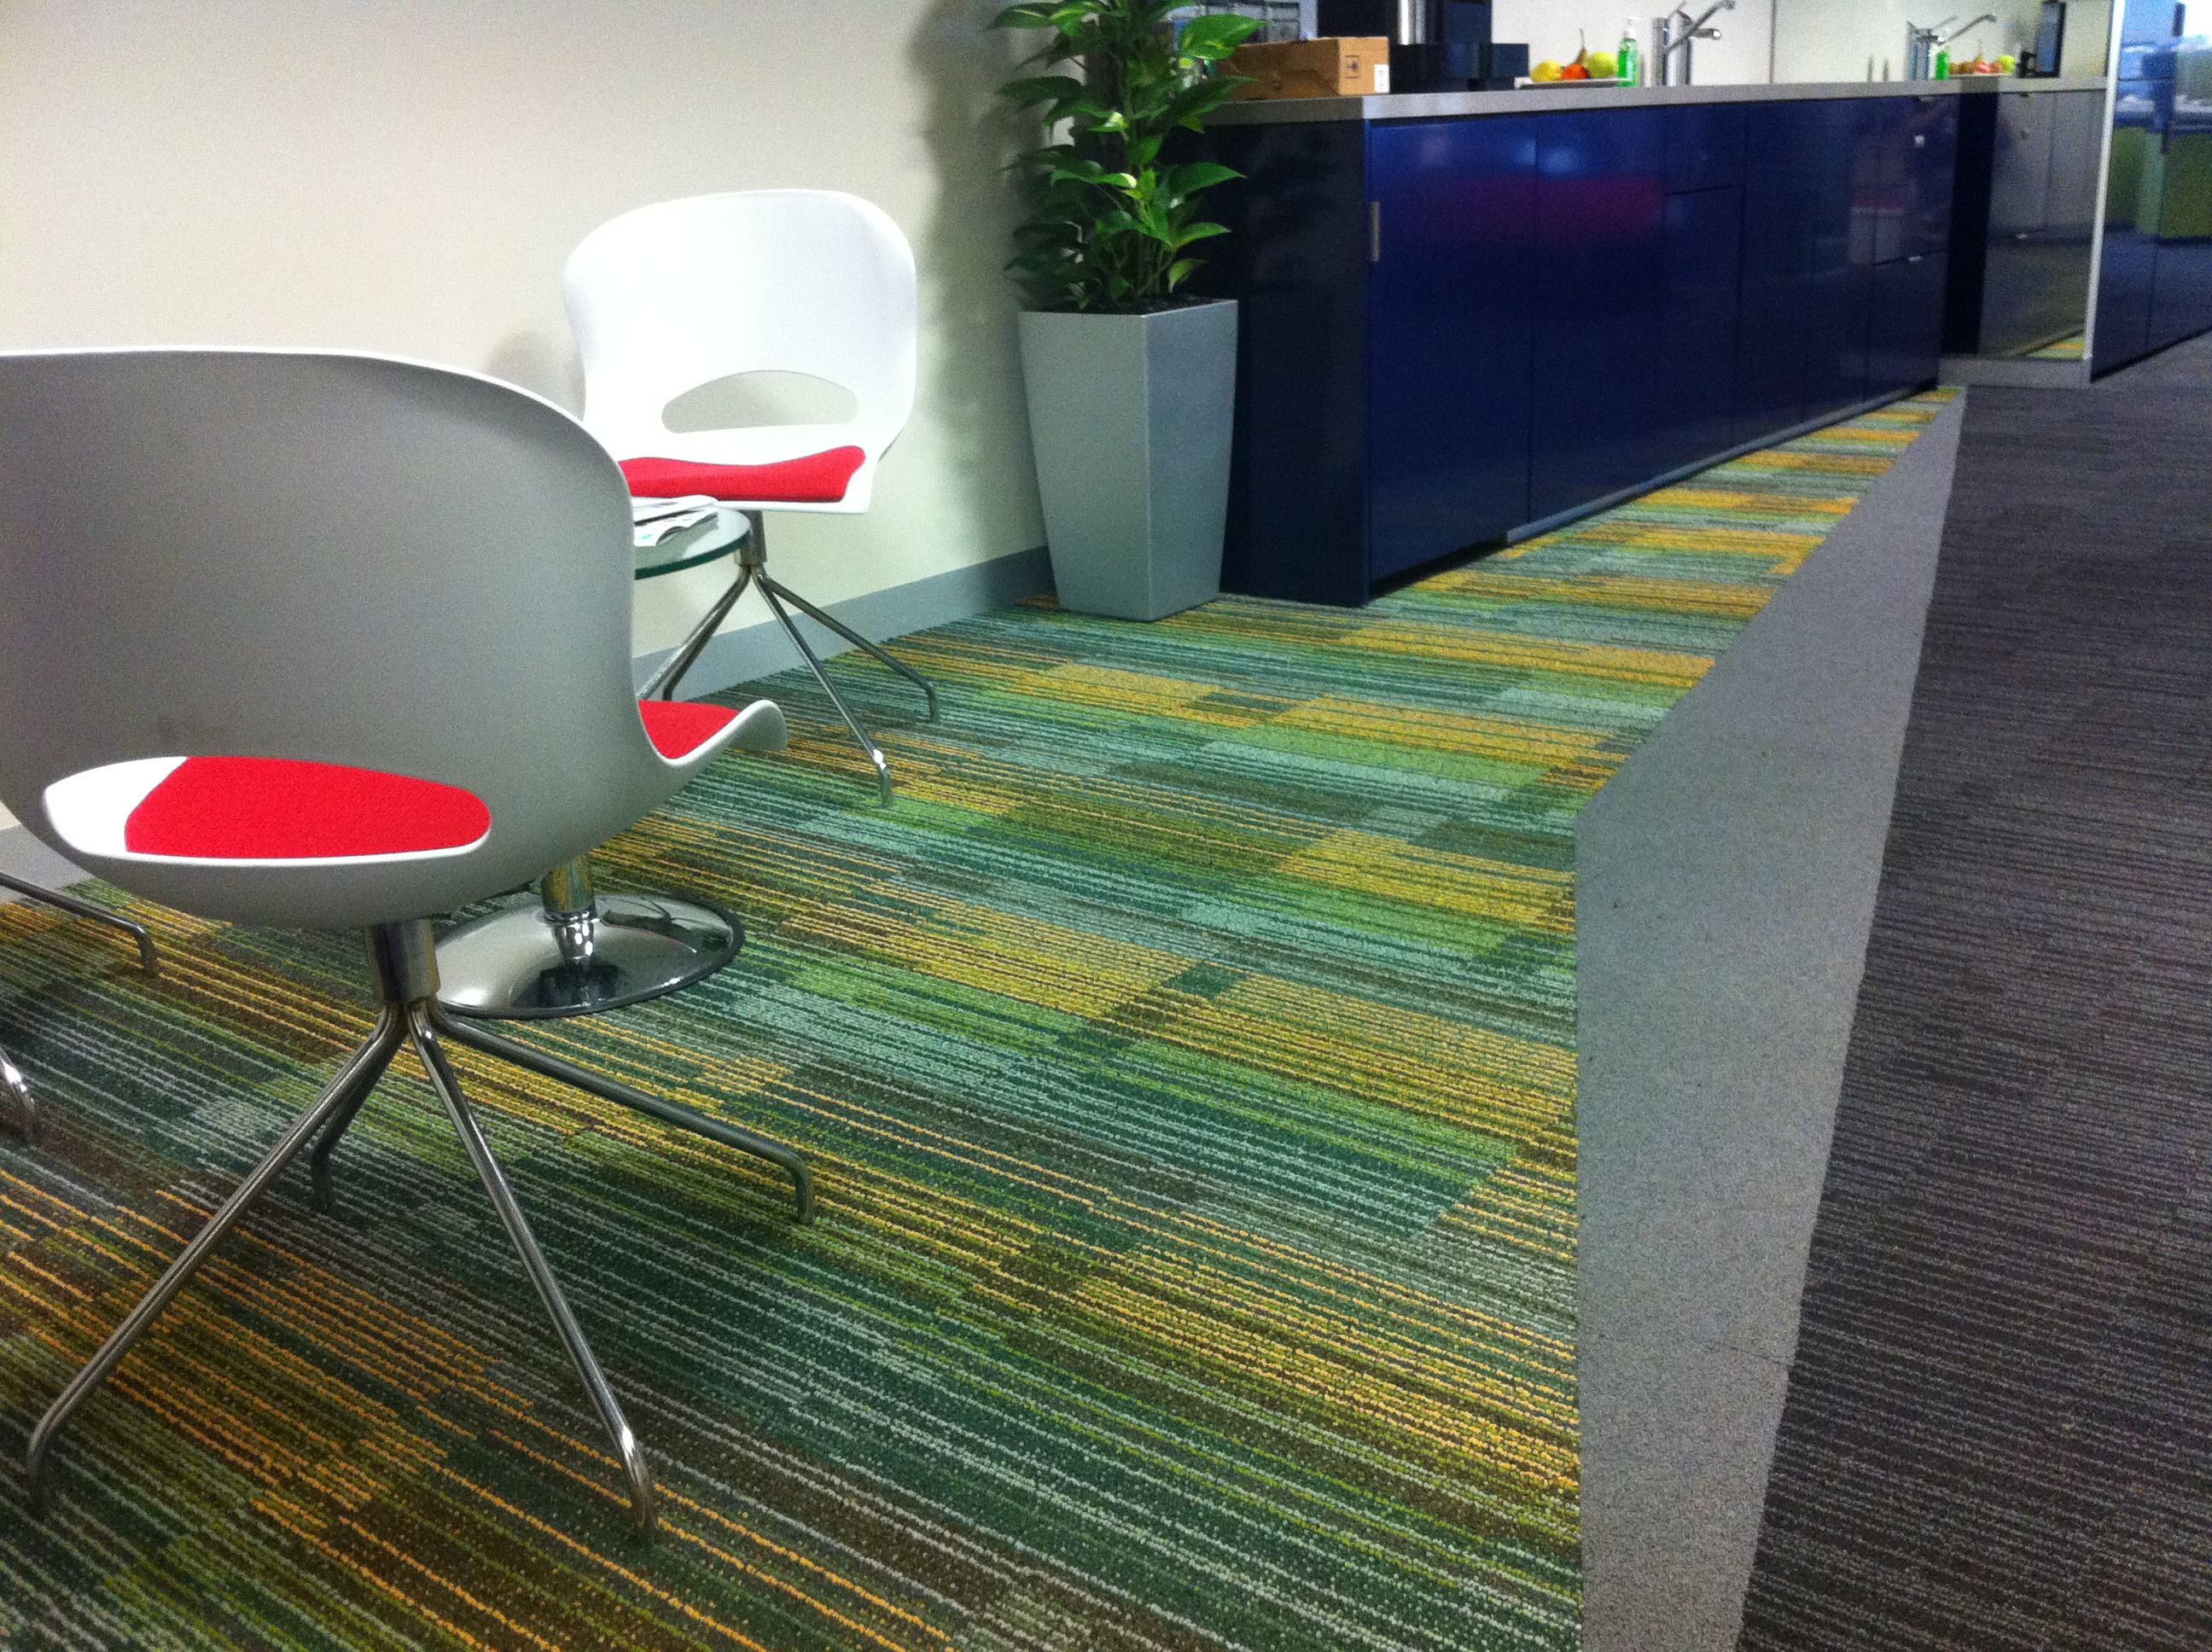 Carpet Design Ideas carpet tiles design ideas | avid floor solutions